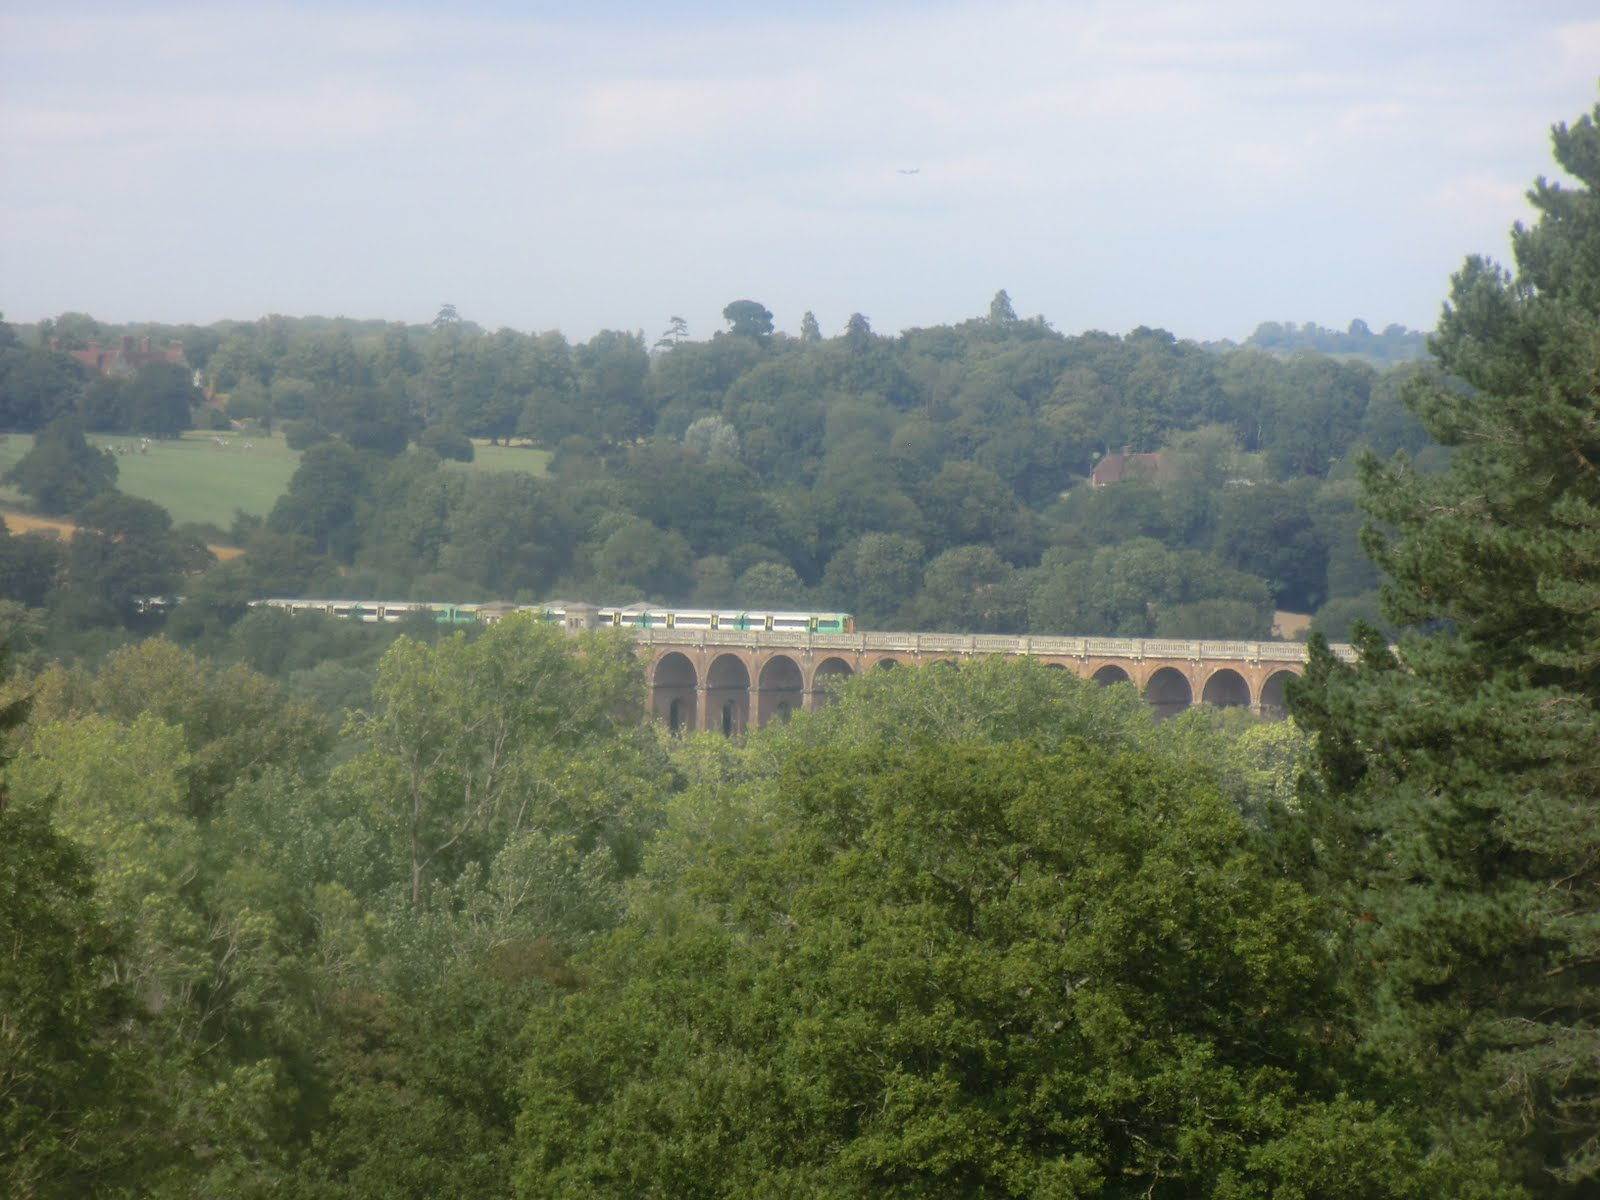 CIMG3760 Distant view of the Ouse Valley Viaduct